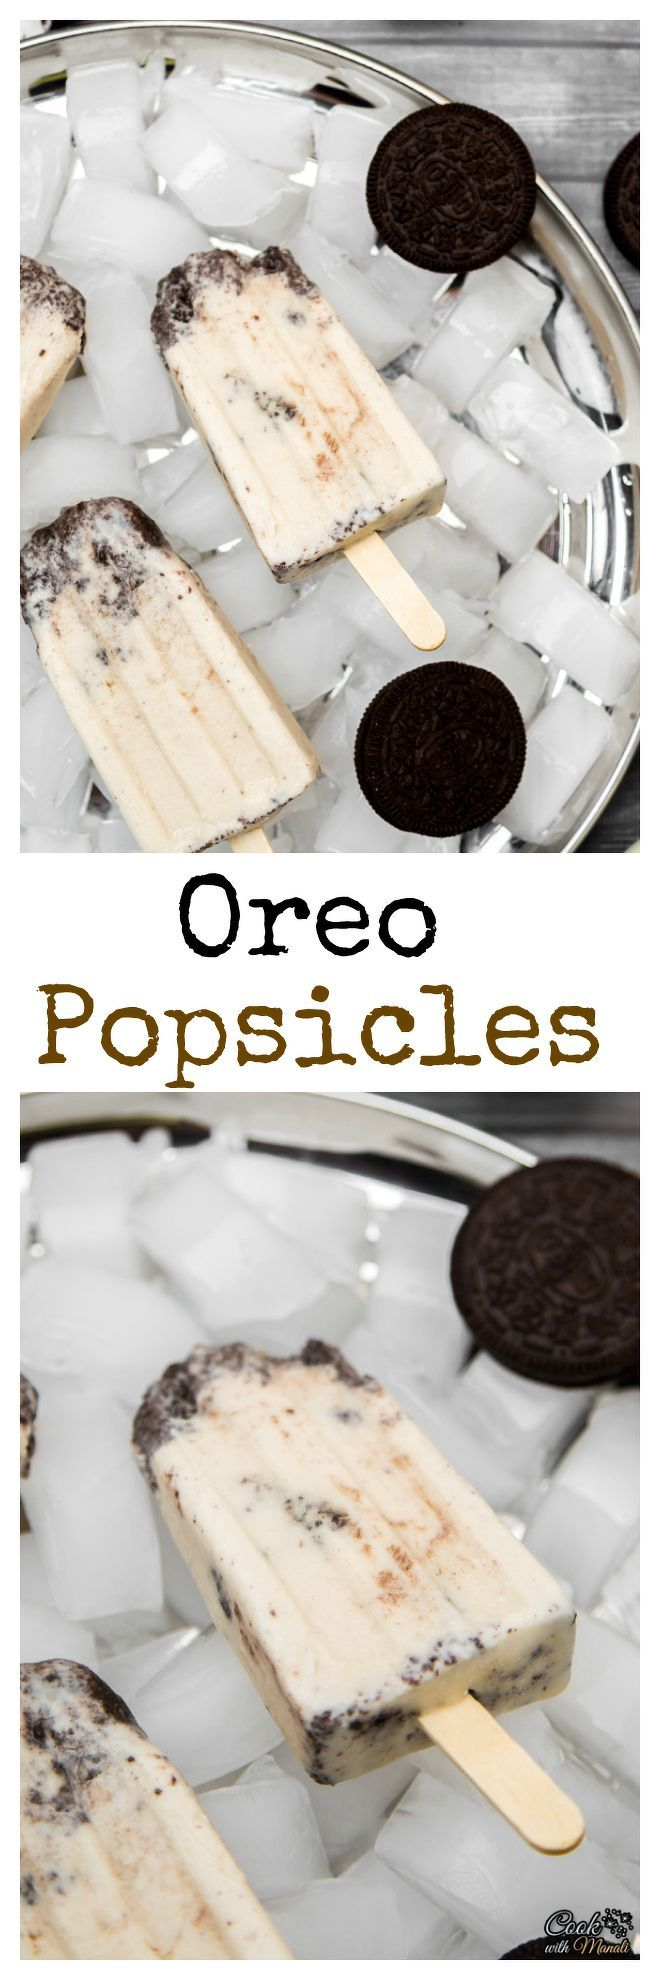 Creamy and delicious Oreo Popsicles made with only 4 ingredients!